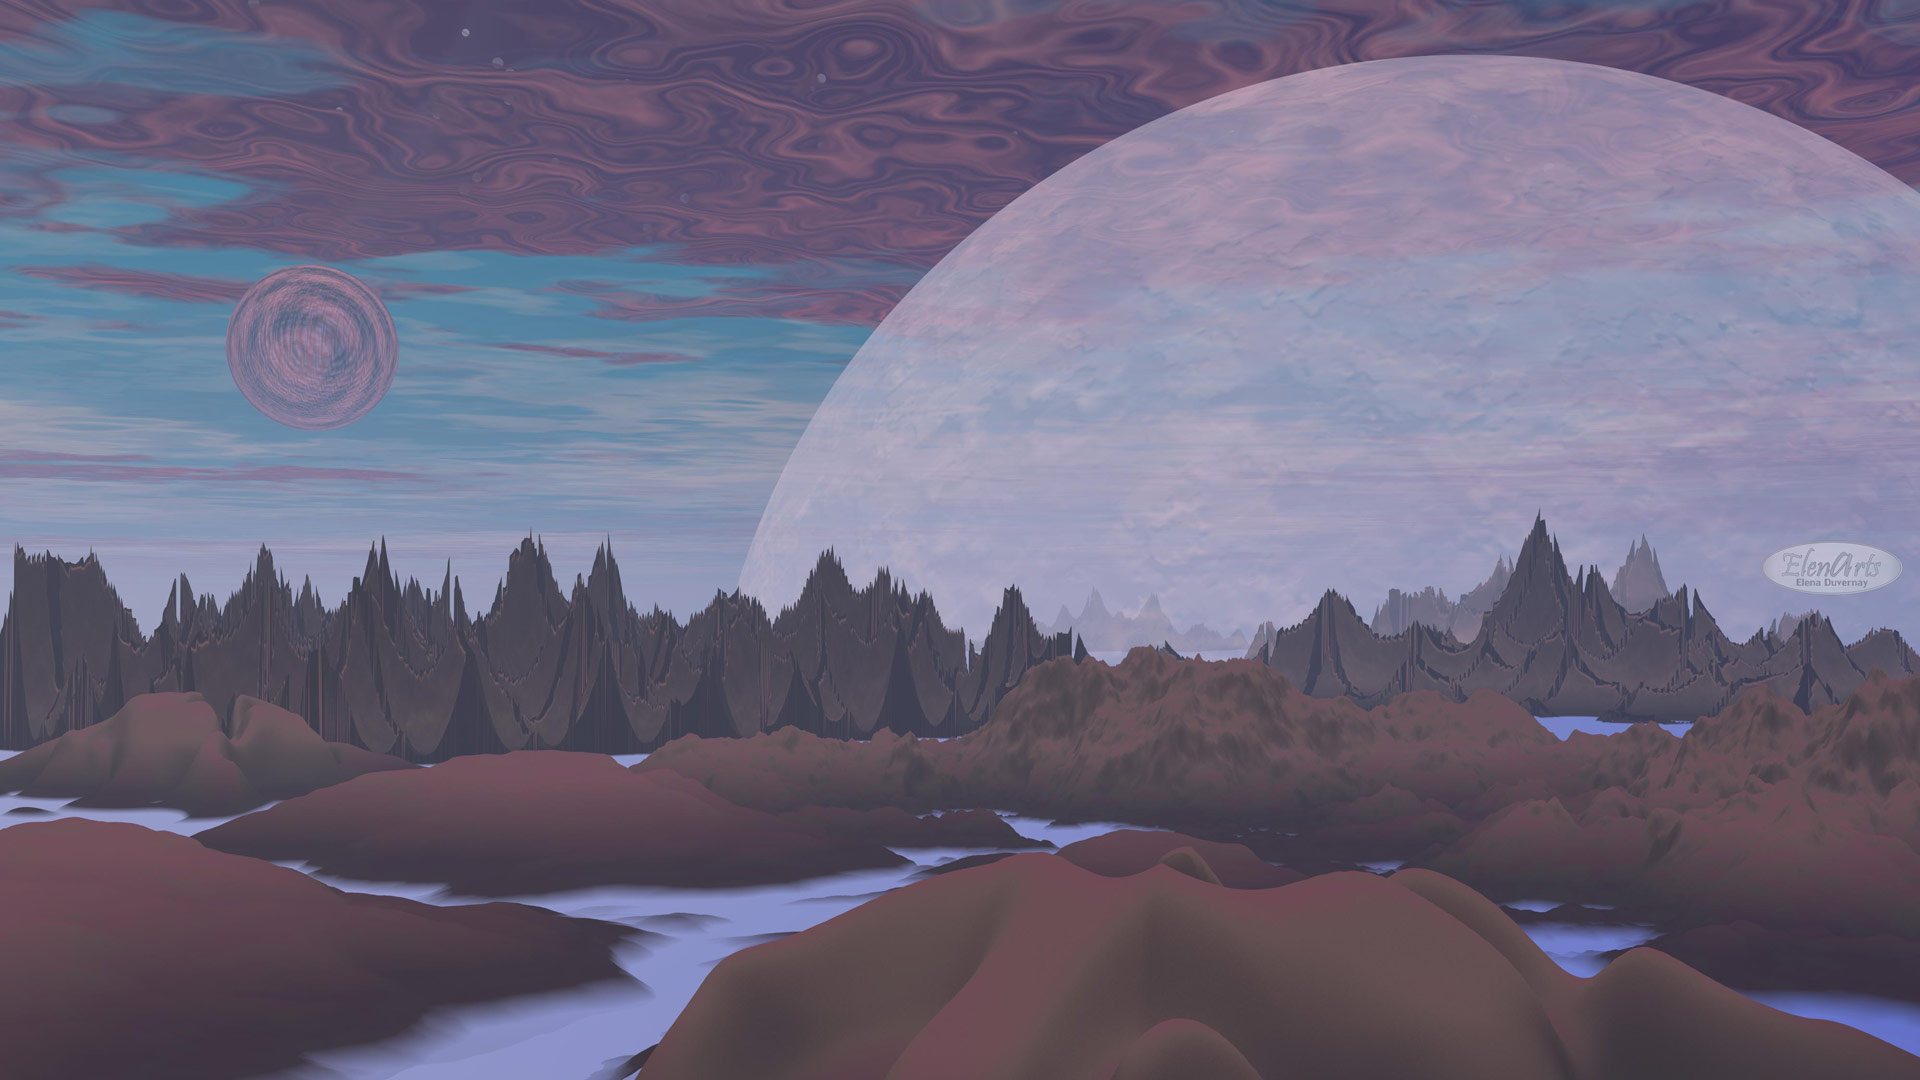 Violet landscape with rock mountains, trees, fog and planets - 3D render